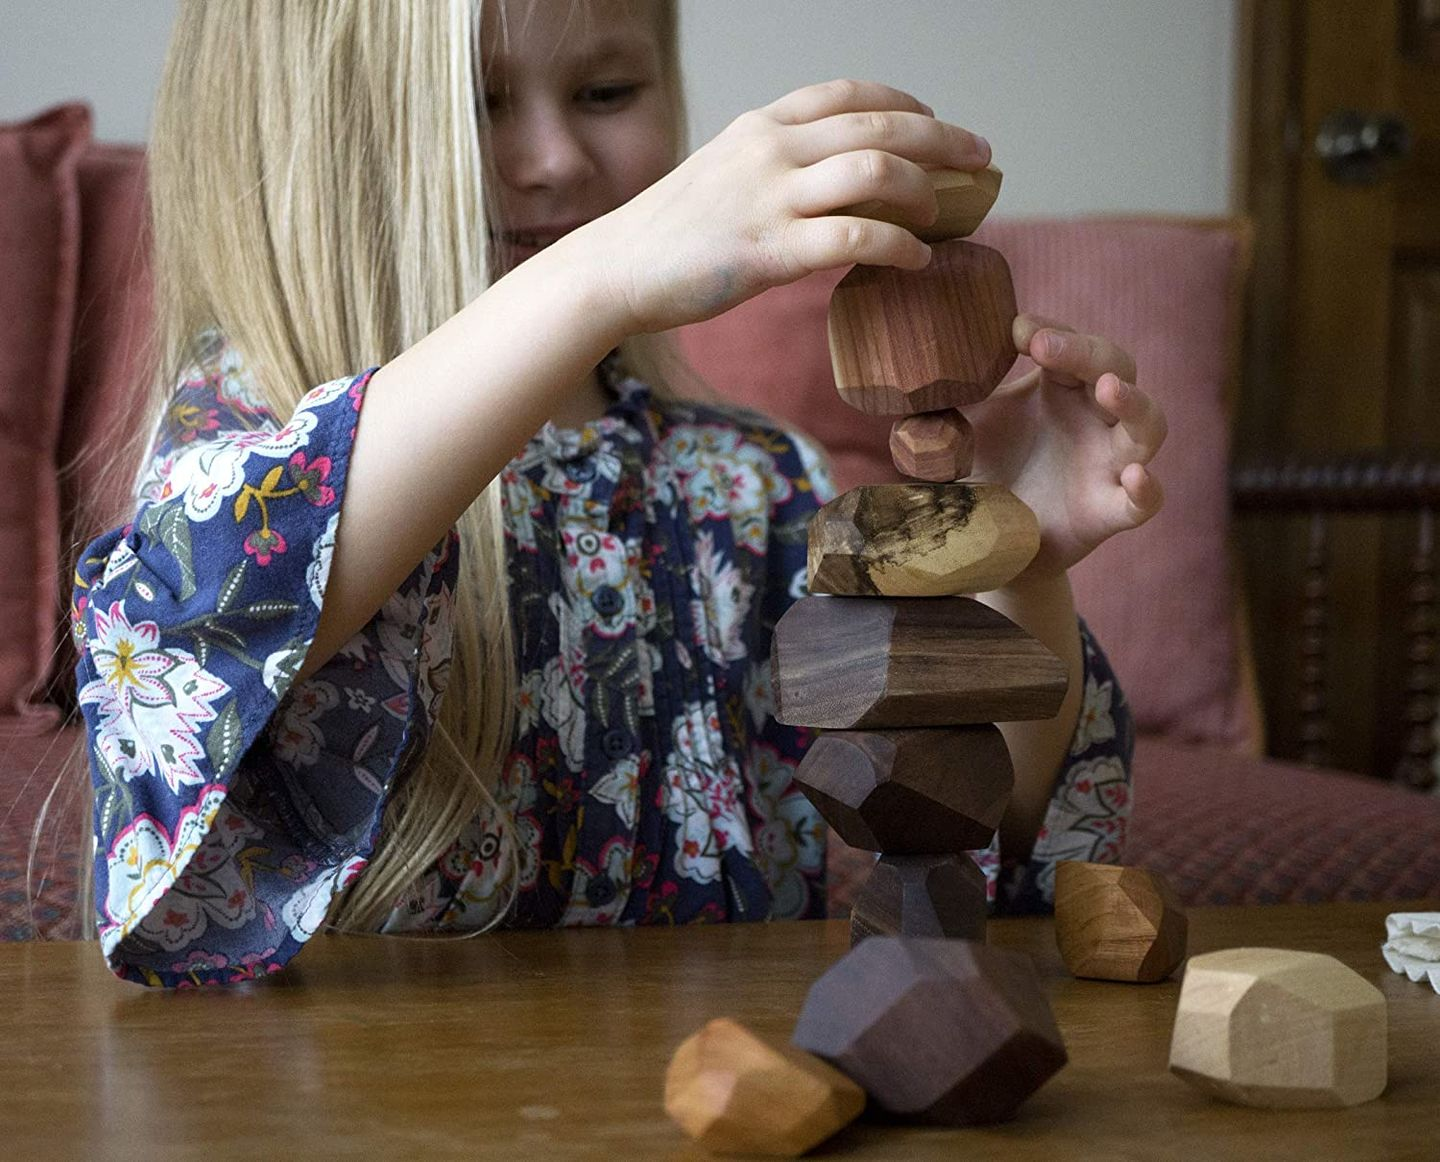 ashley heinen review of 【Last Day 50% OFF】Wood Rock Set Balancing Blocks Natural Wood Toy